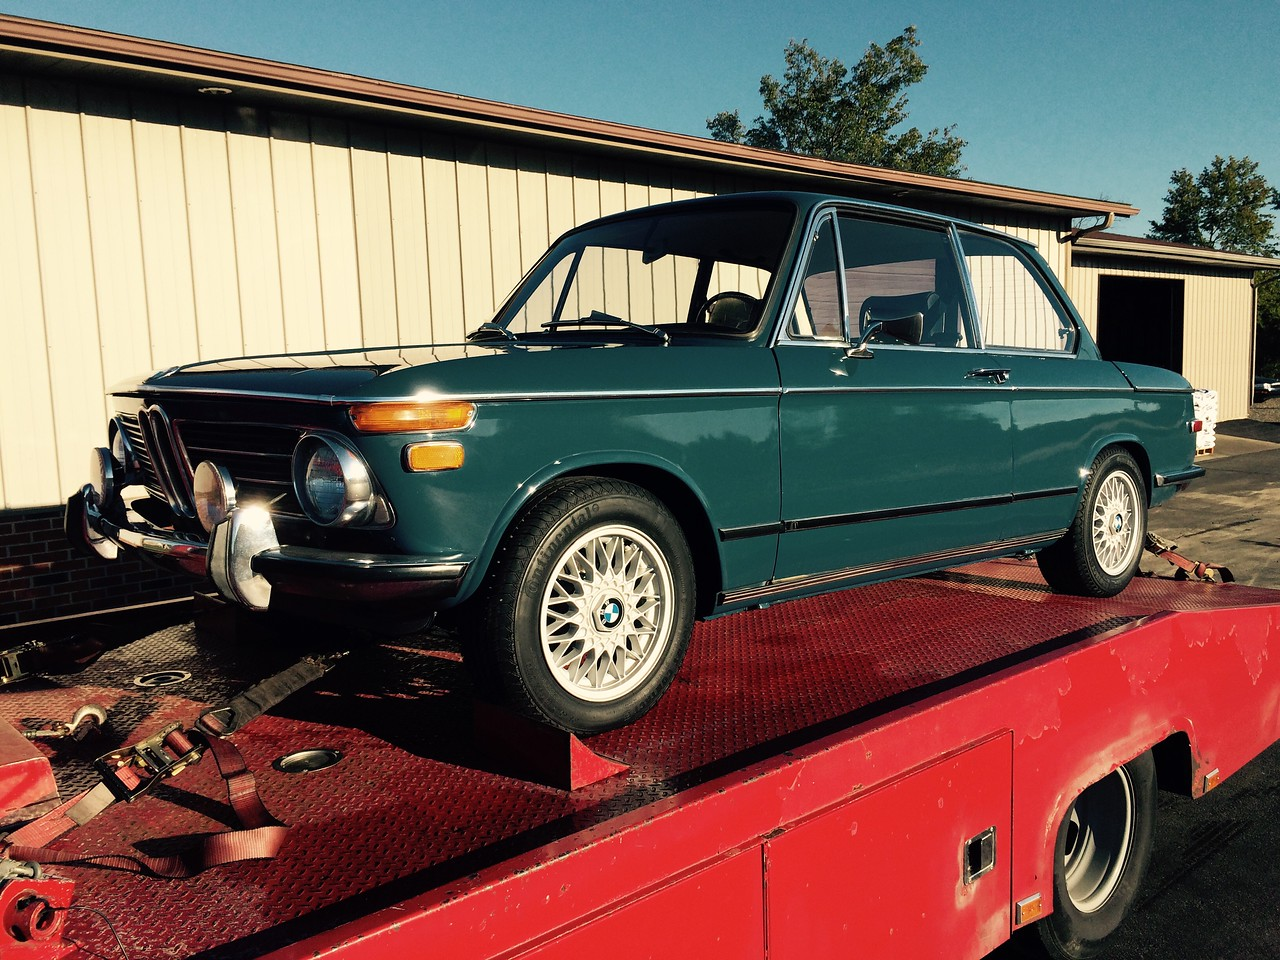 1972 BMW 2002 Coupe (Hillsdale, Michigan to Gallatin, Tennessee)